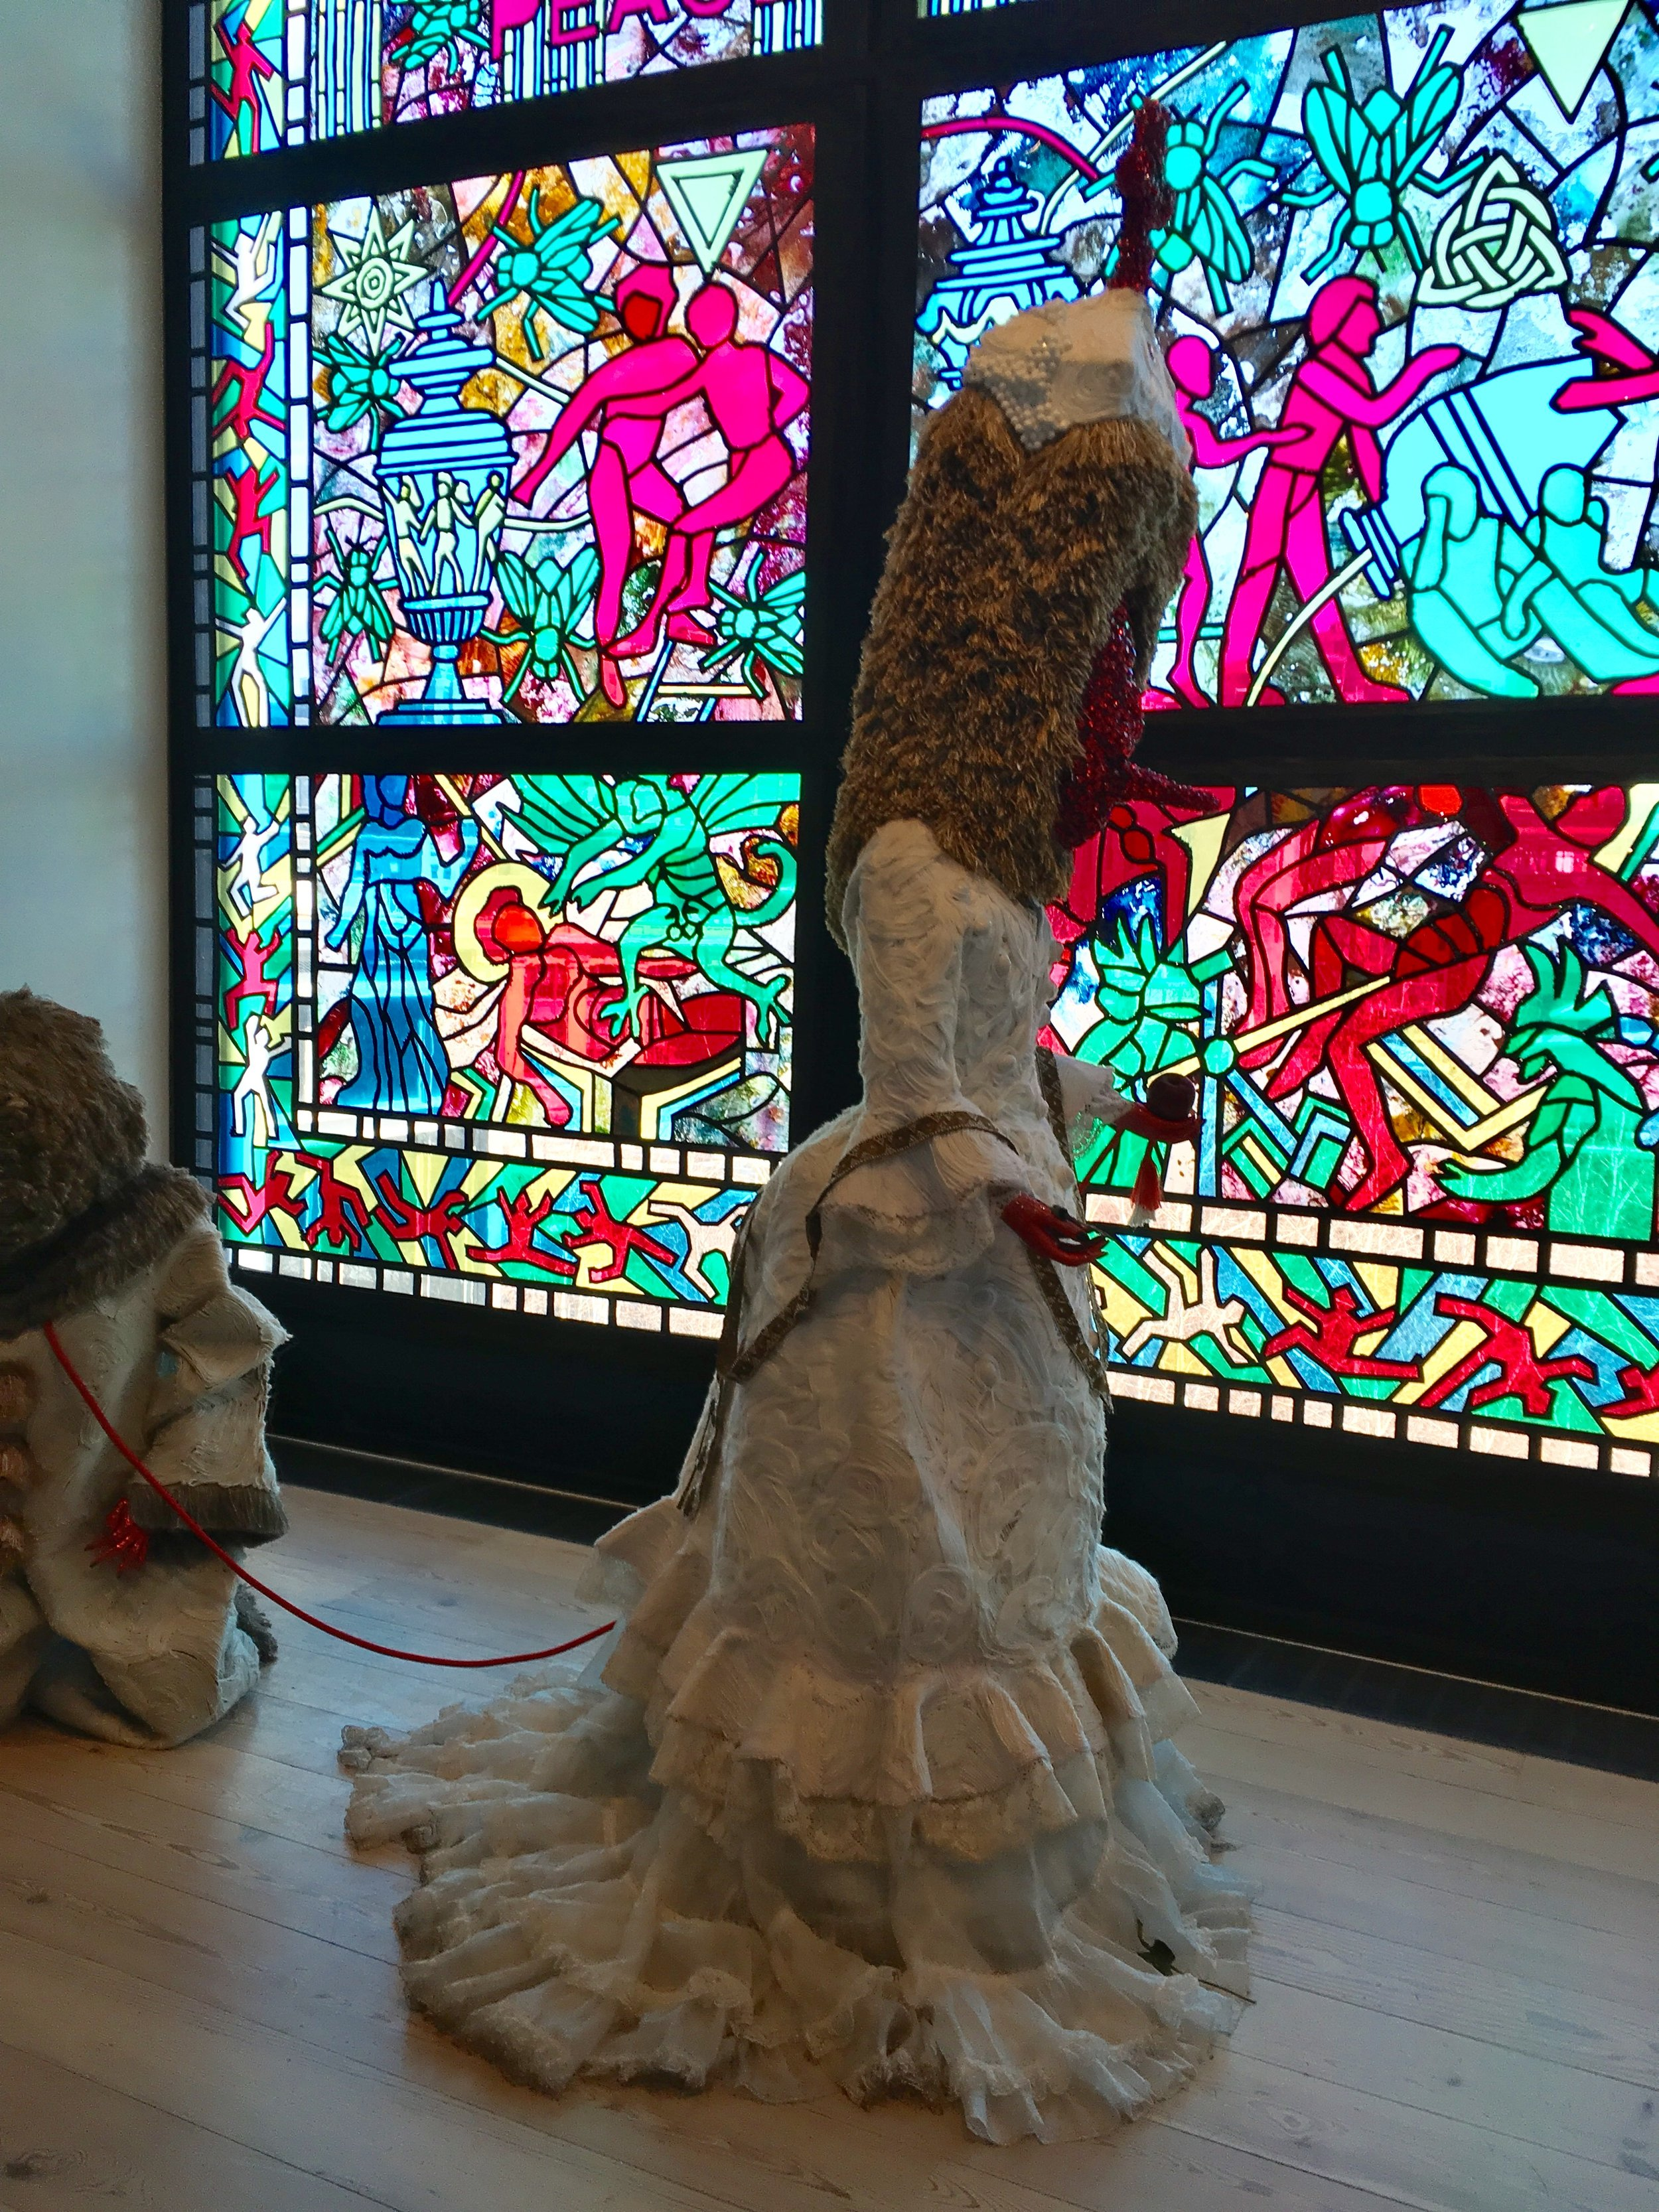 The figures are made out of beads and other fabric embellishments. This piece was called, 'Somos Monstros'. His work explores life-and-death through religion, fashion, nature. His dedication to craftsmanship is obvious.